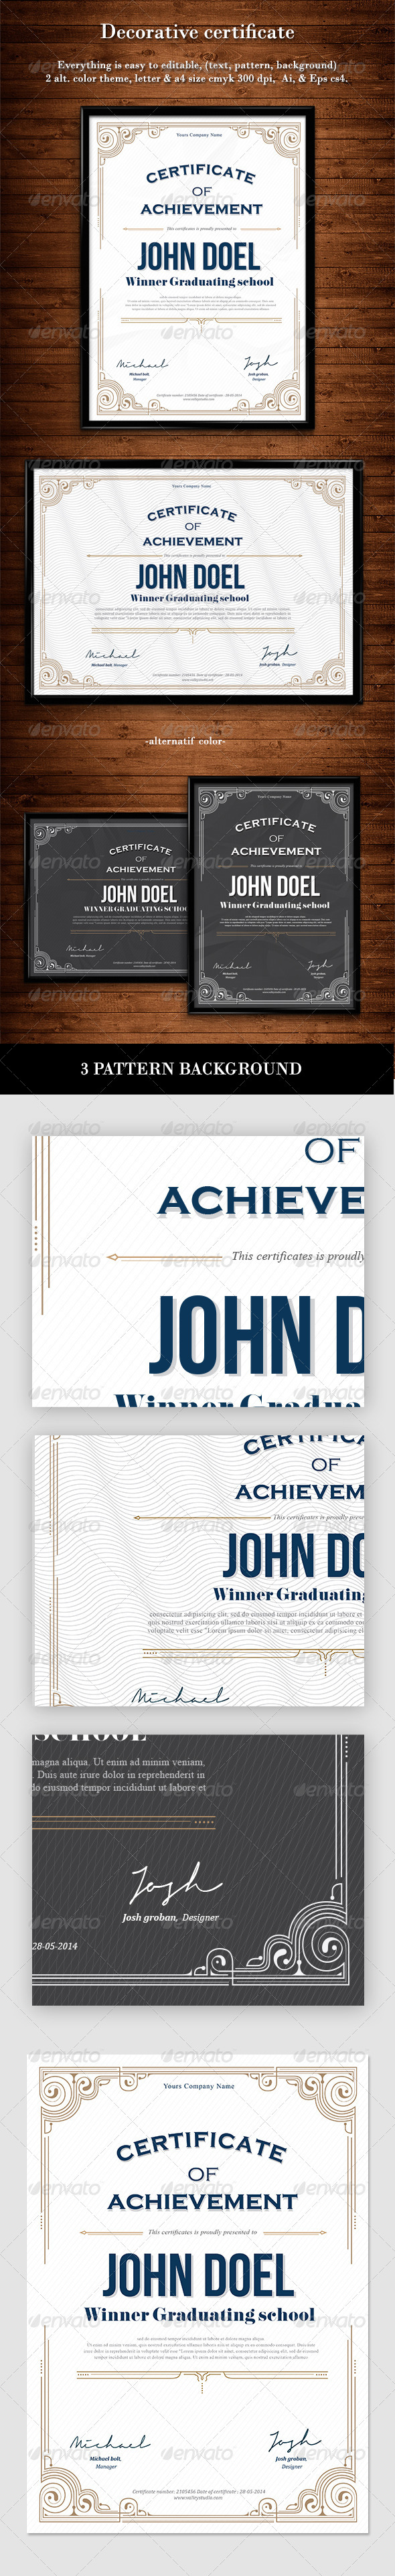 GraphicRiver Decorative Certificate 7747512